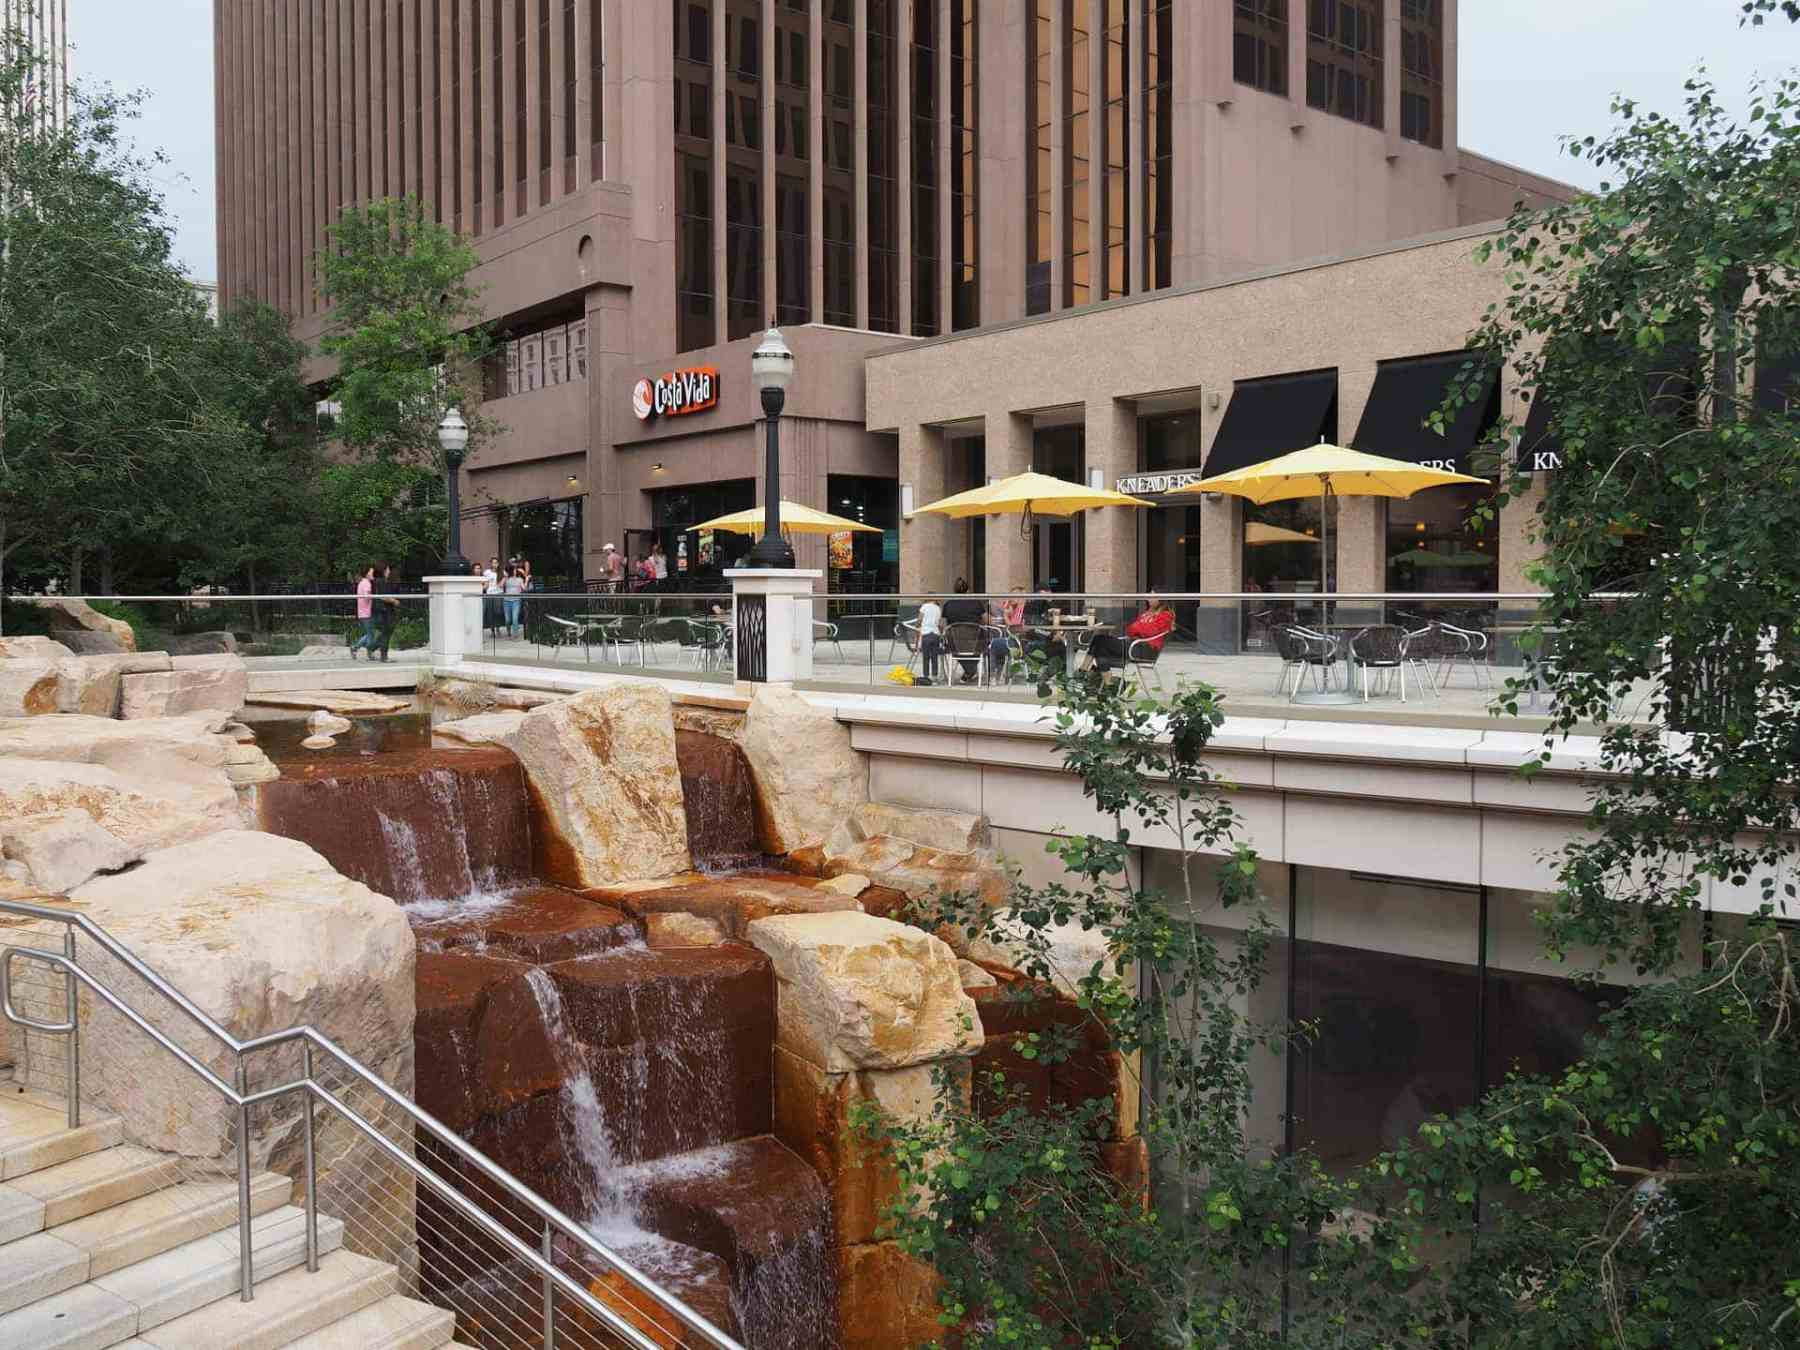 City Creek Mall in Salt Lake City